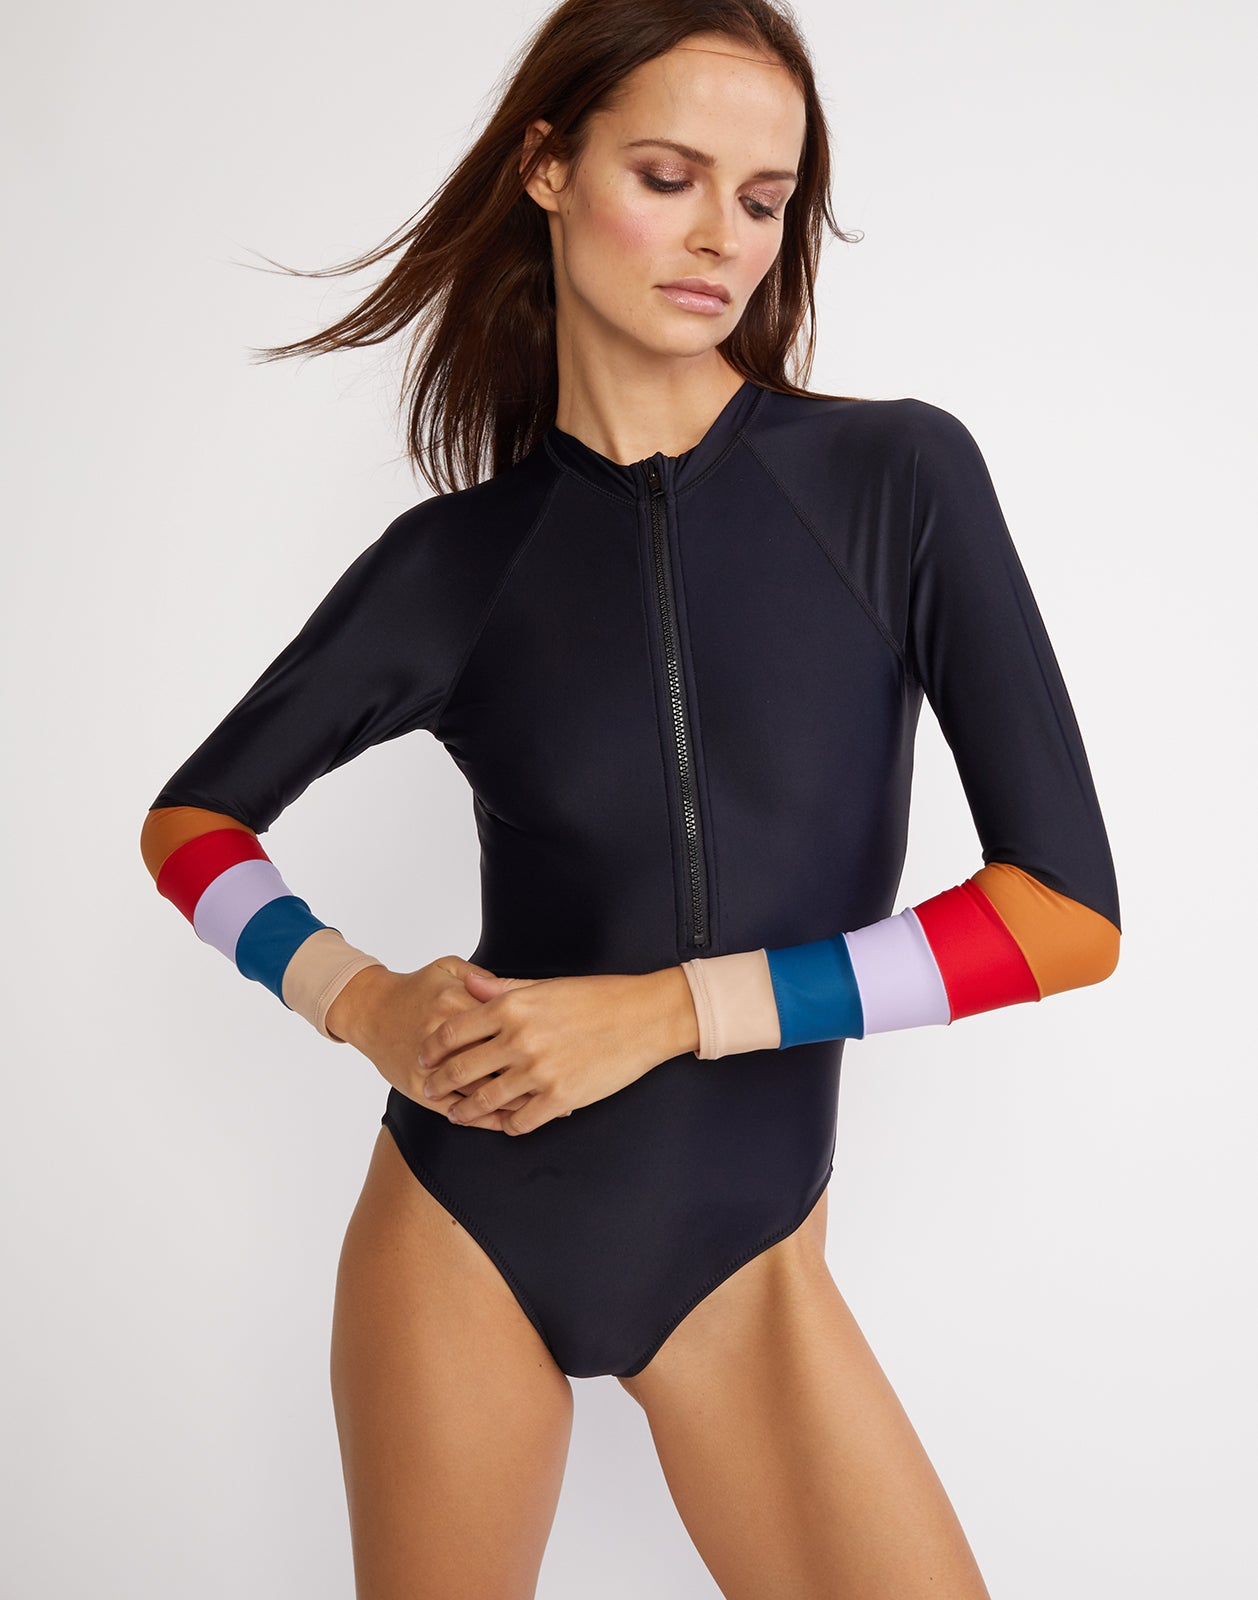 Front view of the surf suit with colorblock striped sleeves and front zipper.